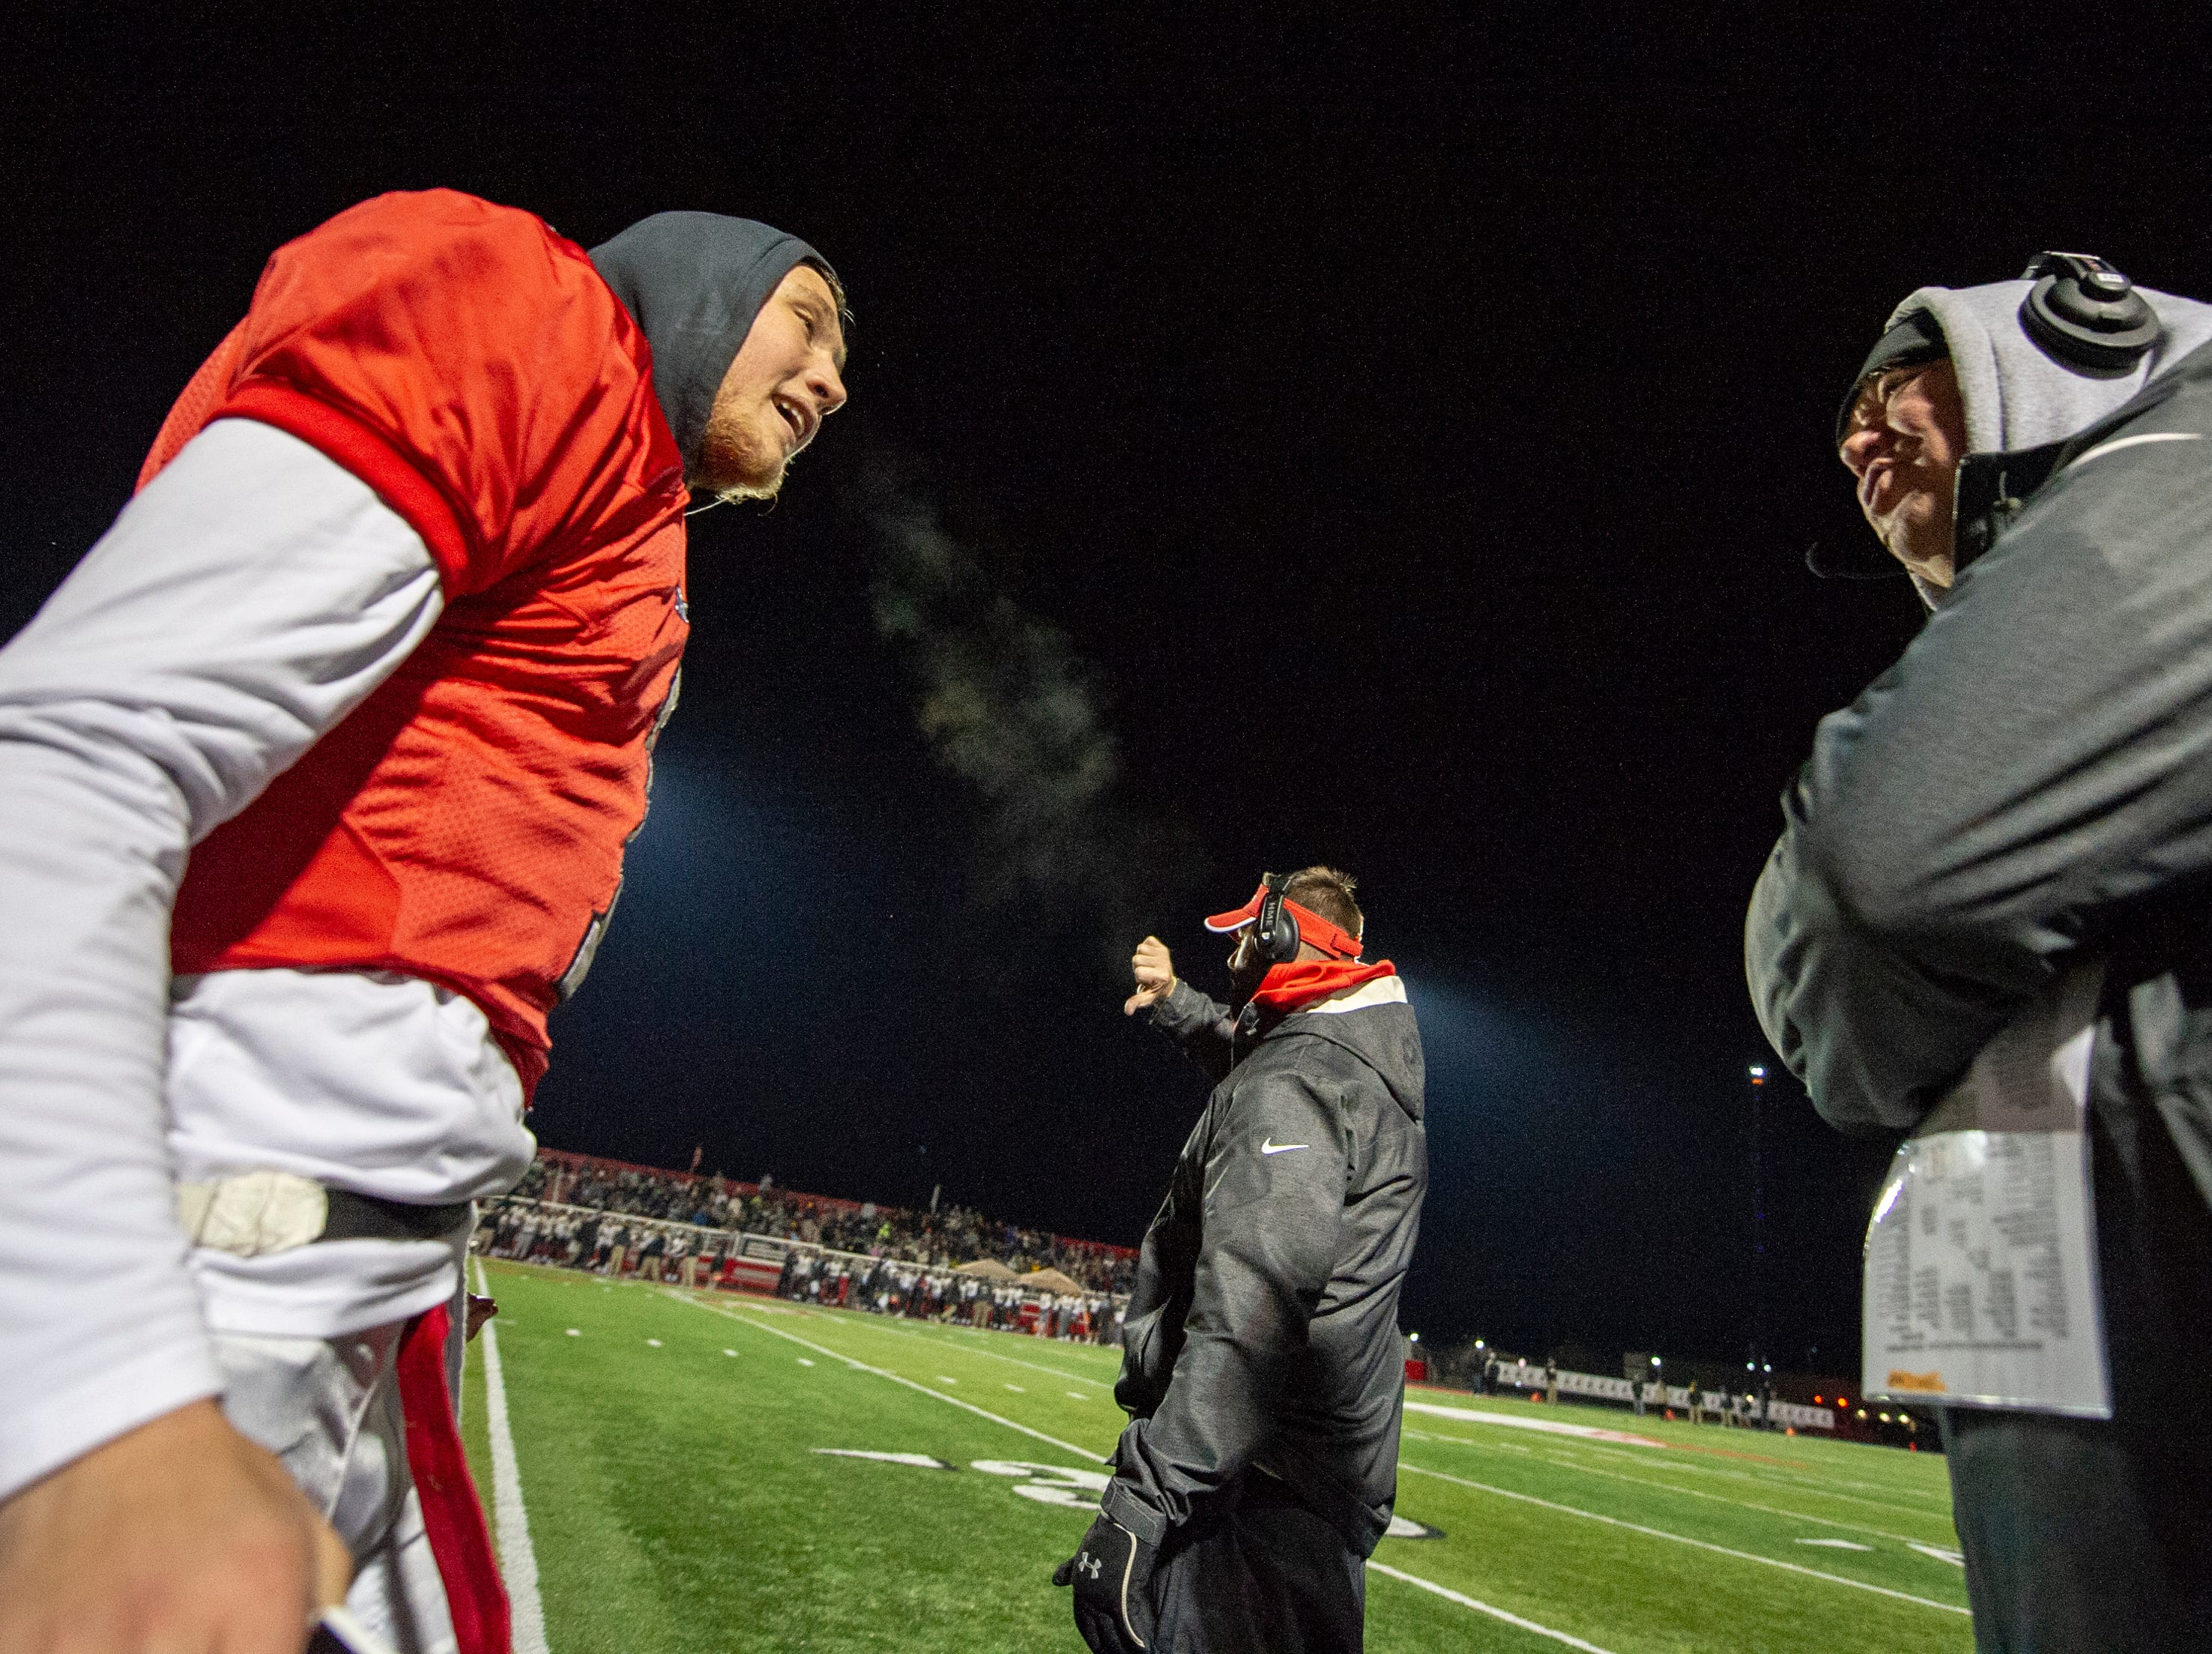 Center Grove High School senior Jack Moore (1) is greeted by his dad and head coach Eric Moore at the sideline during the first half of action. Center Grove High School hosted Avon High School in an IHSAA Class 6A Regional Championship varsity football game, Friday, Nov. 9, 2018.